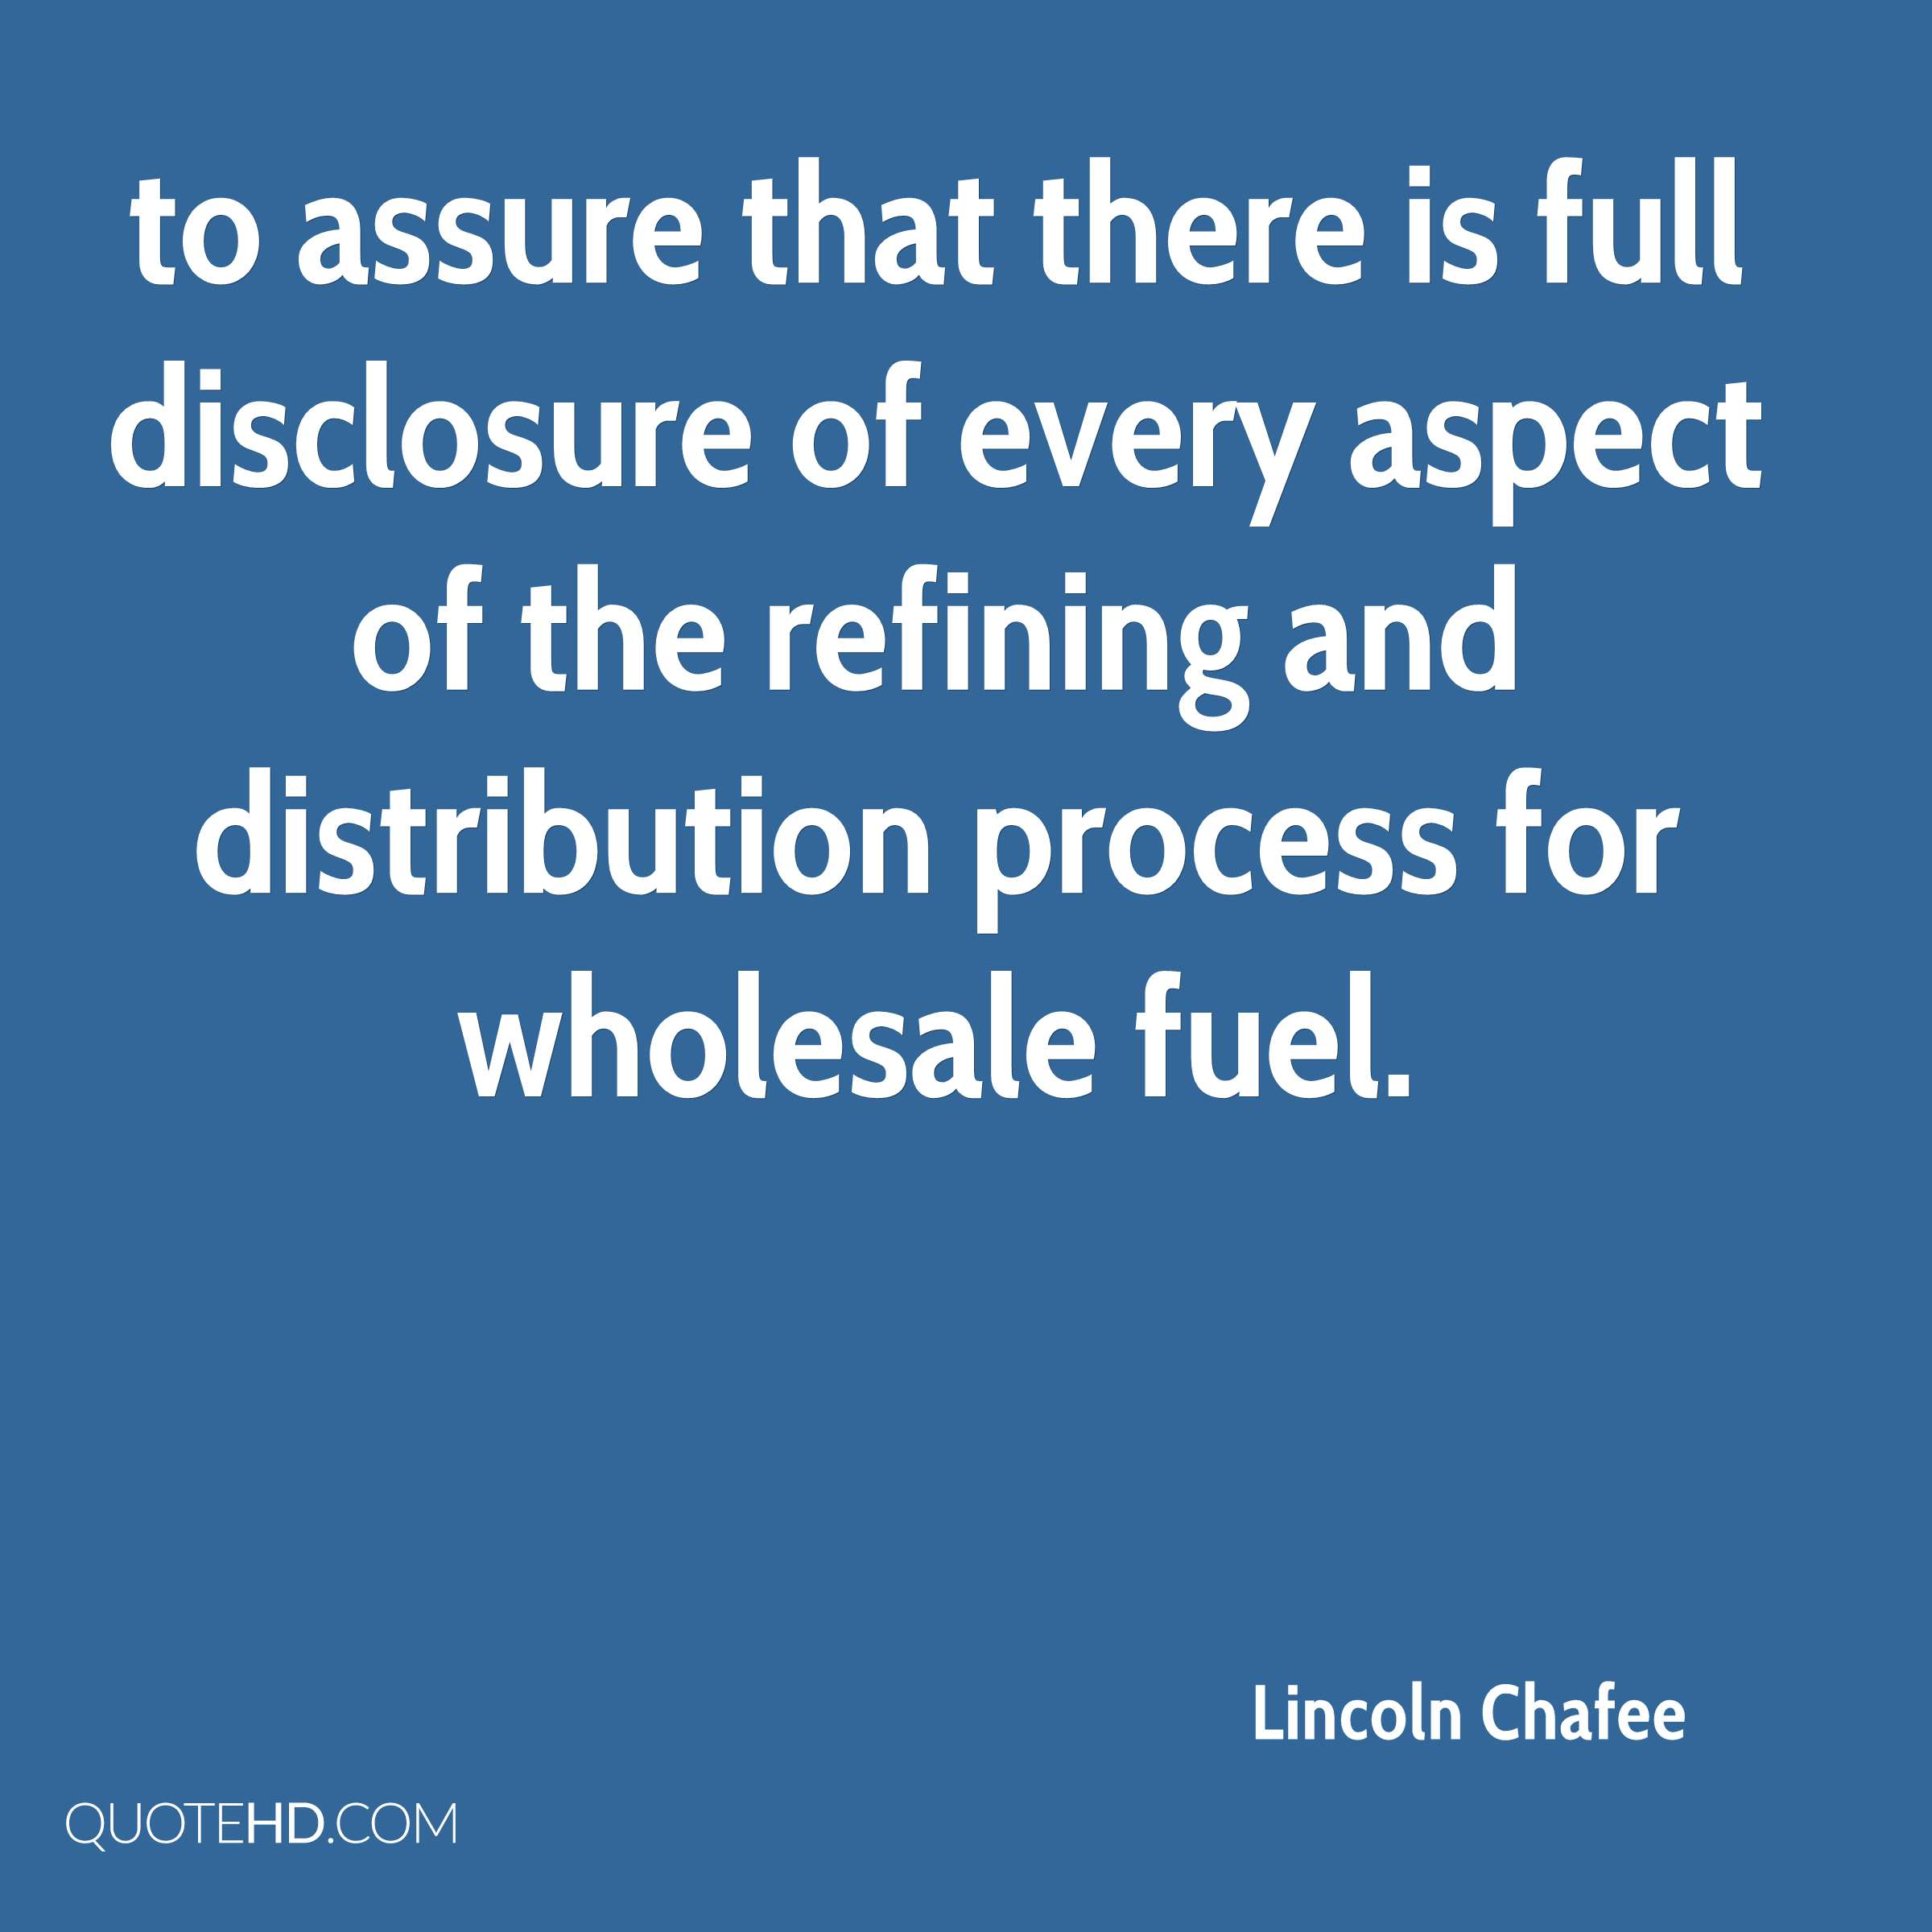 to assure that there is full disclosure of every aspect of the refining and distribution process for wholesale fuel.